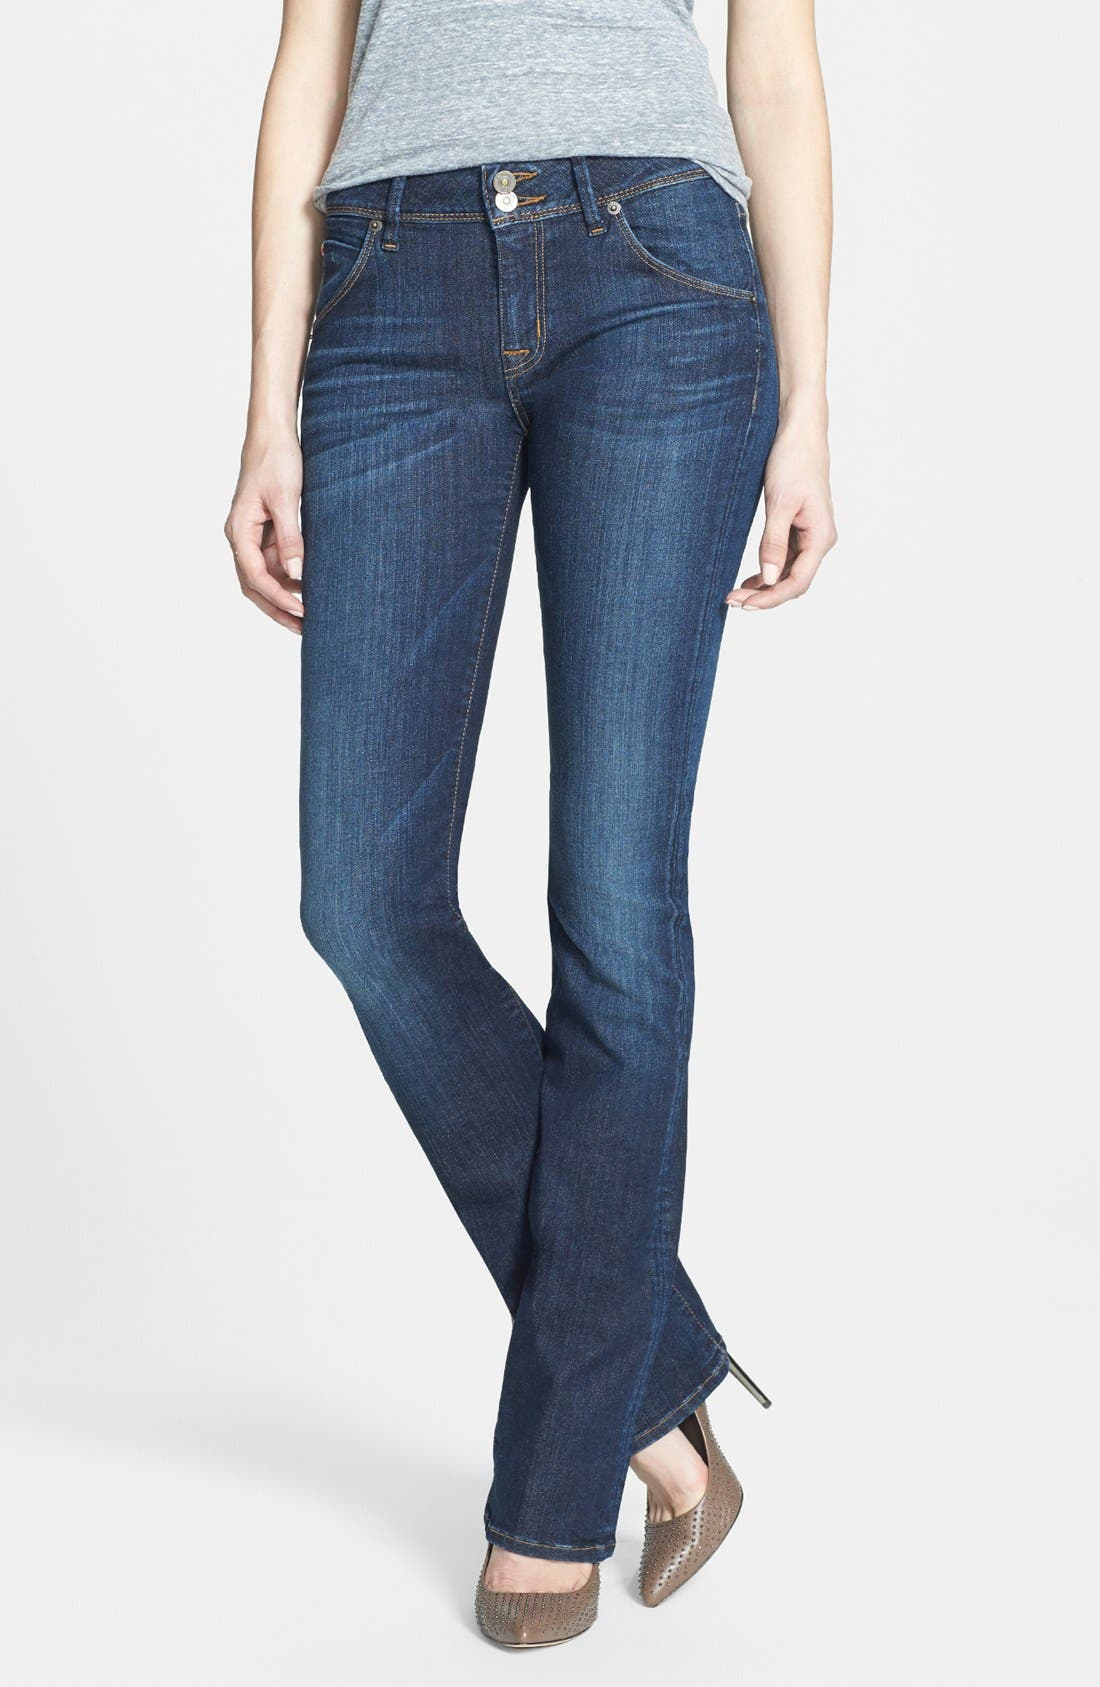 Main Image - Hudson Jeans 'Beth' Mid Rise Baby Bootcut Jeans (Nightfall)